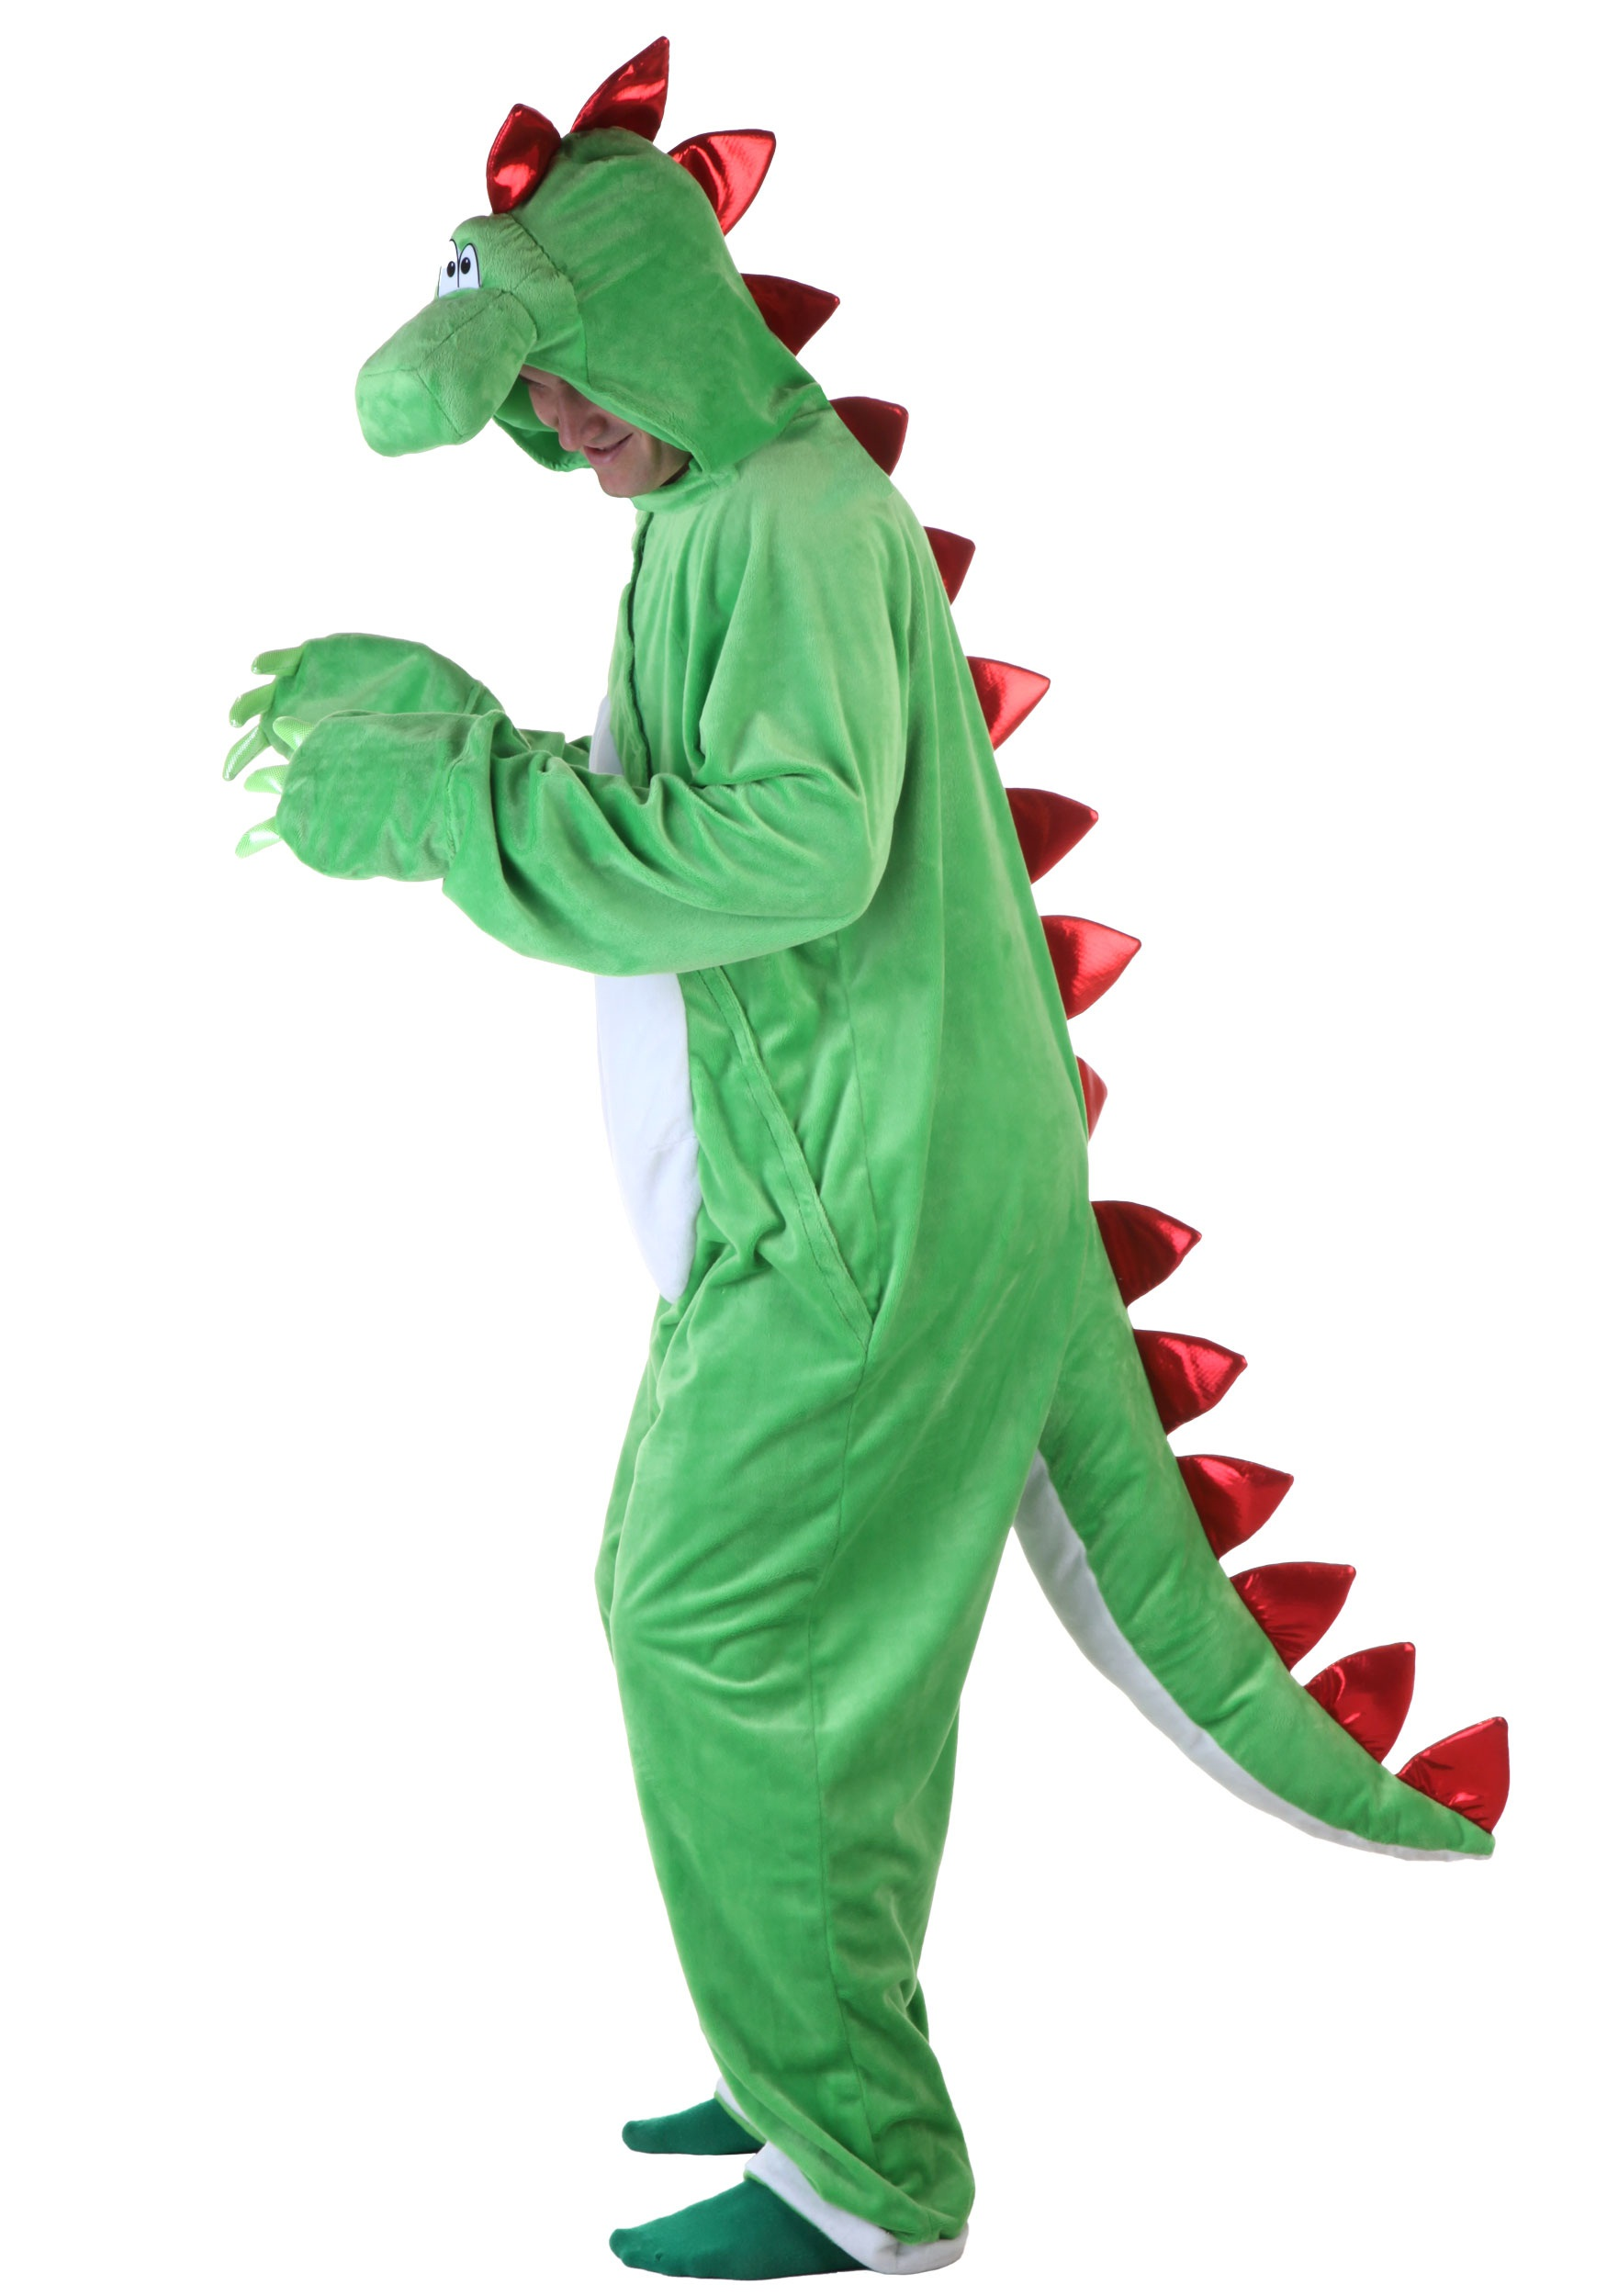 Adult Green Dinosaur w/ Red Spikes  sc 1 st  Halloween Costumes & Adult Green Dinosaur w/ Red Spikes - Halloween Costumes